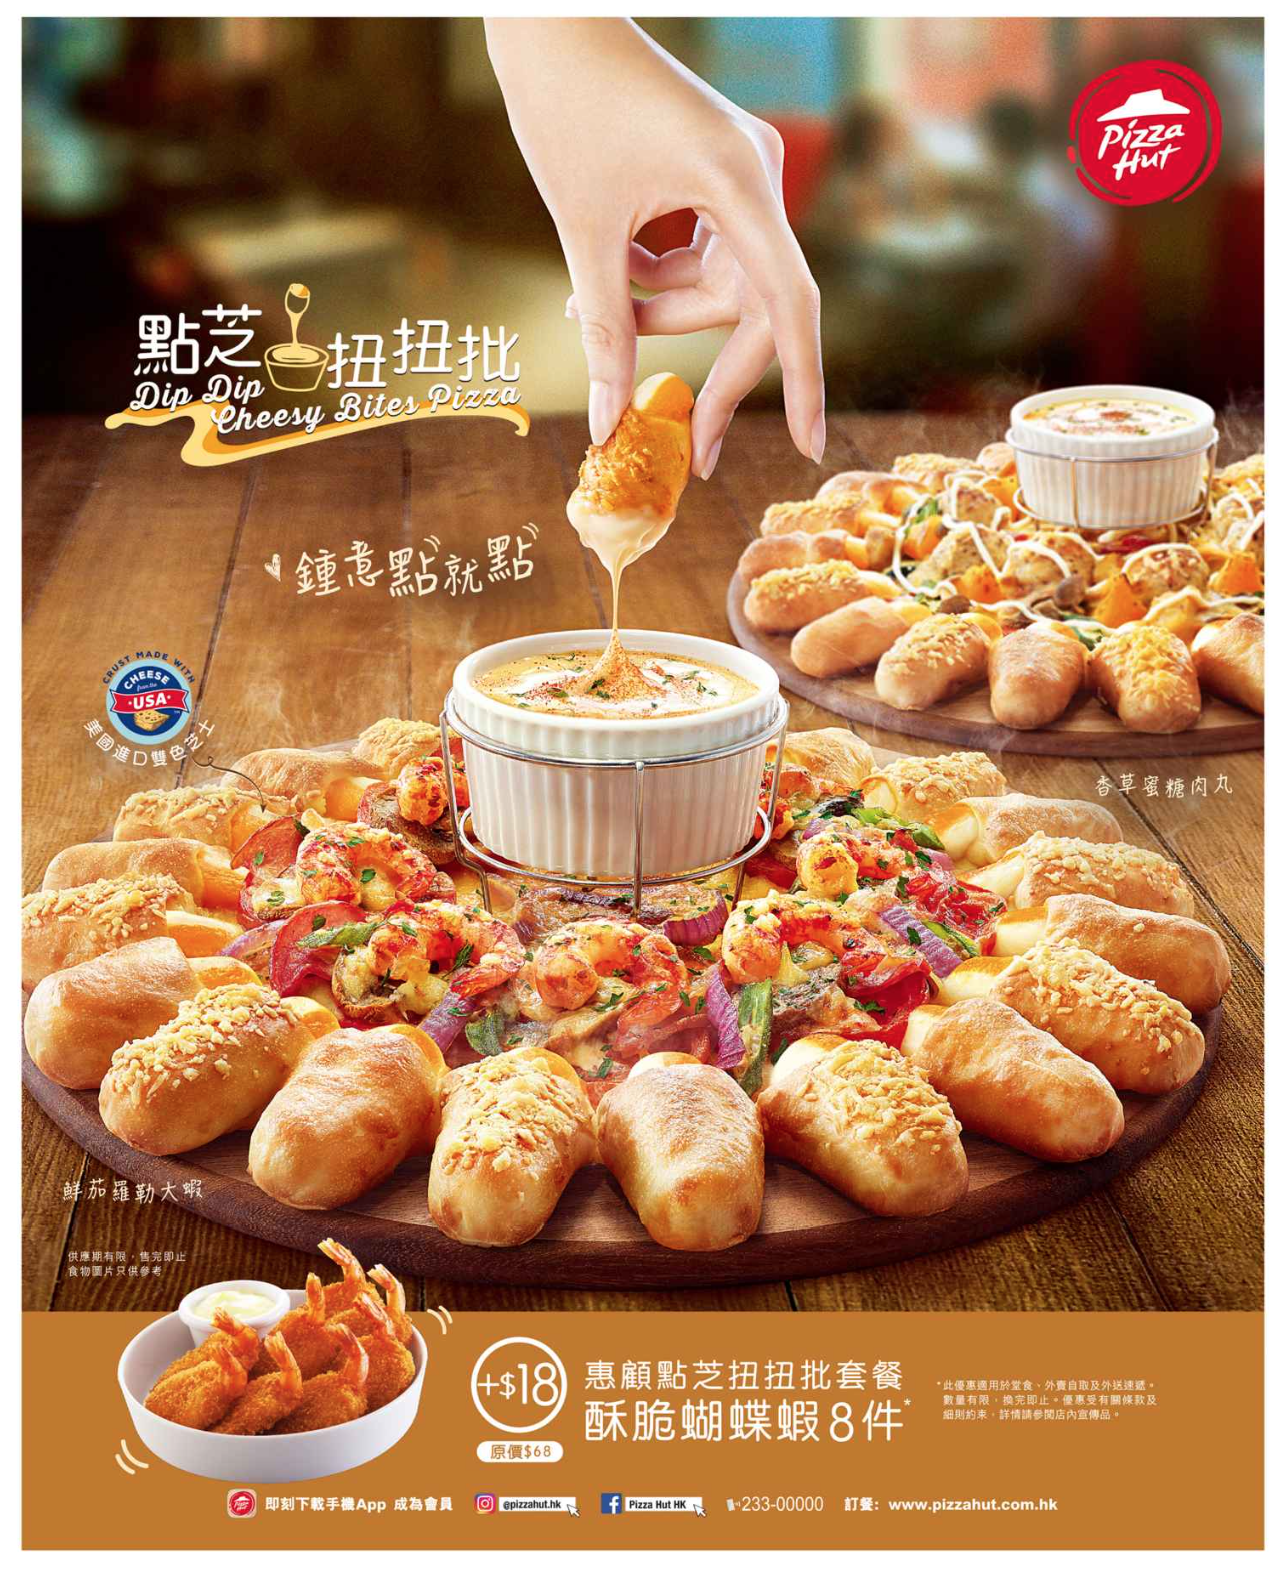 pin by charleston ball on hk ads pinterest pizzas food